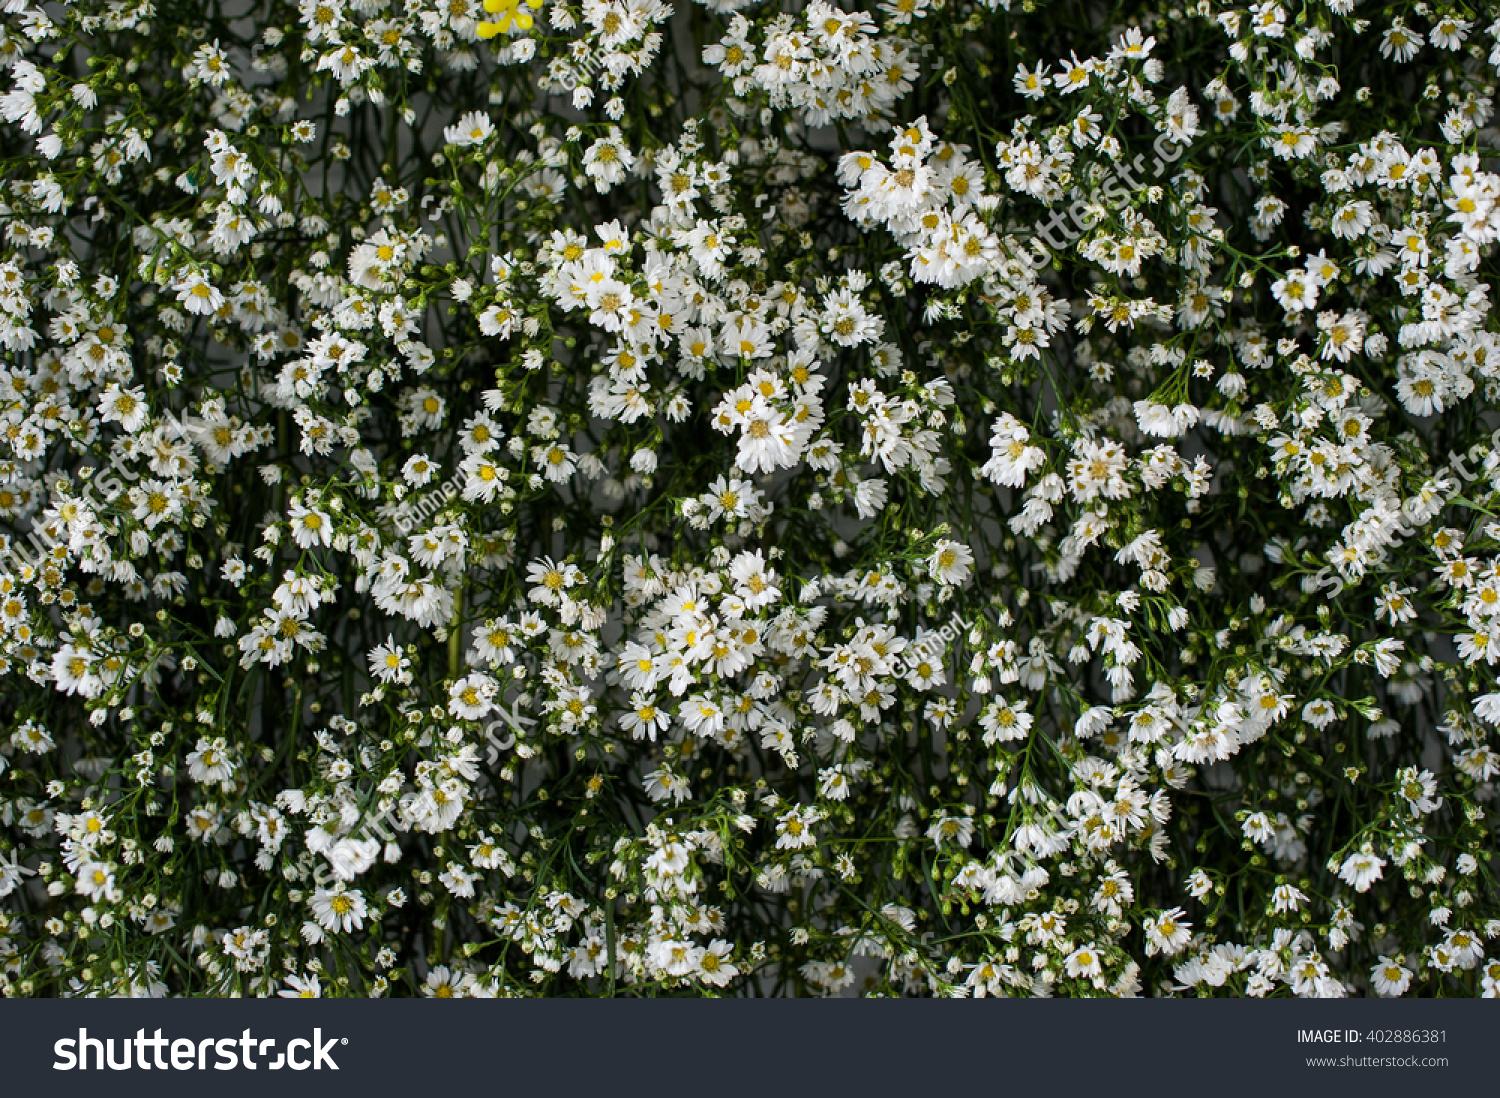 Royalty Free Small White Flowers And Green Leaves 402886381 Stock